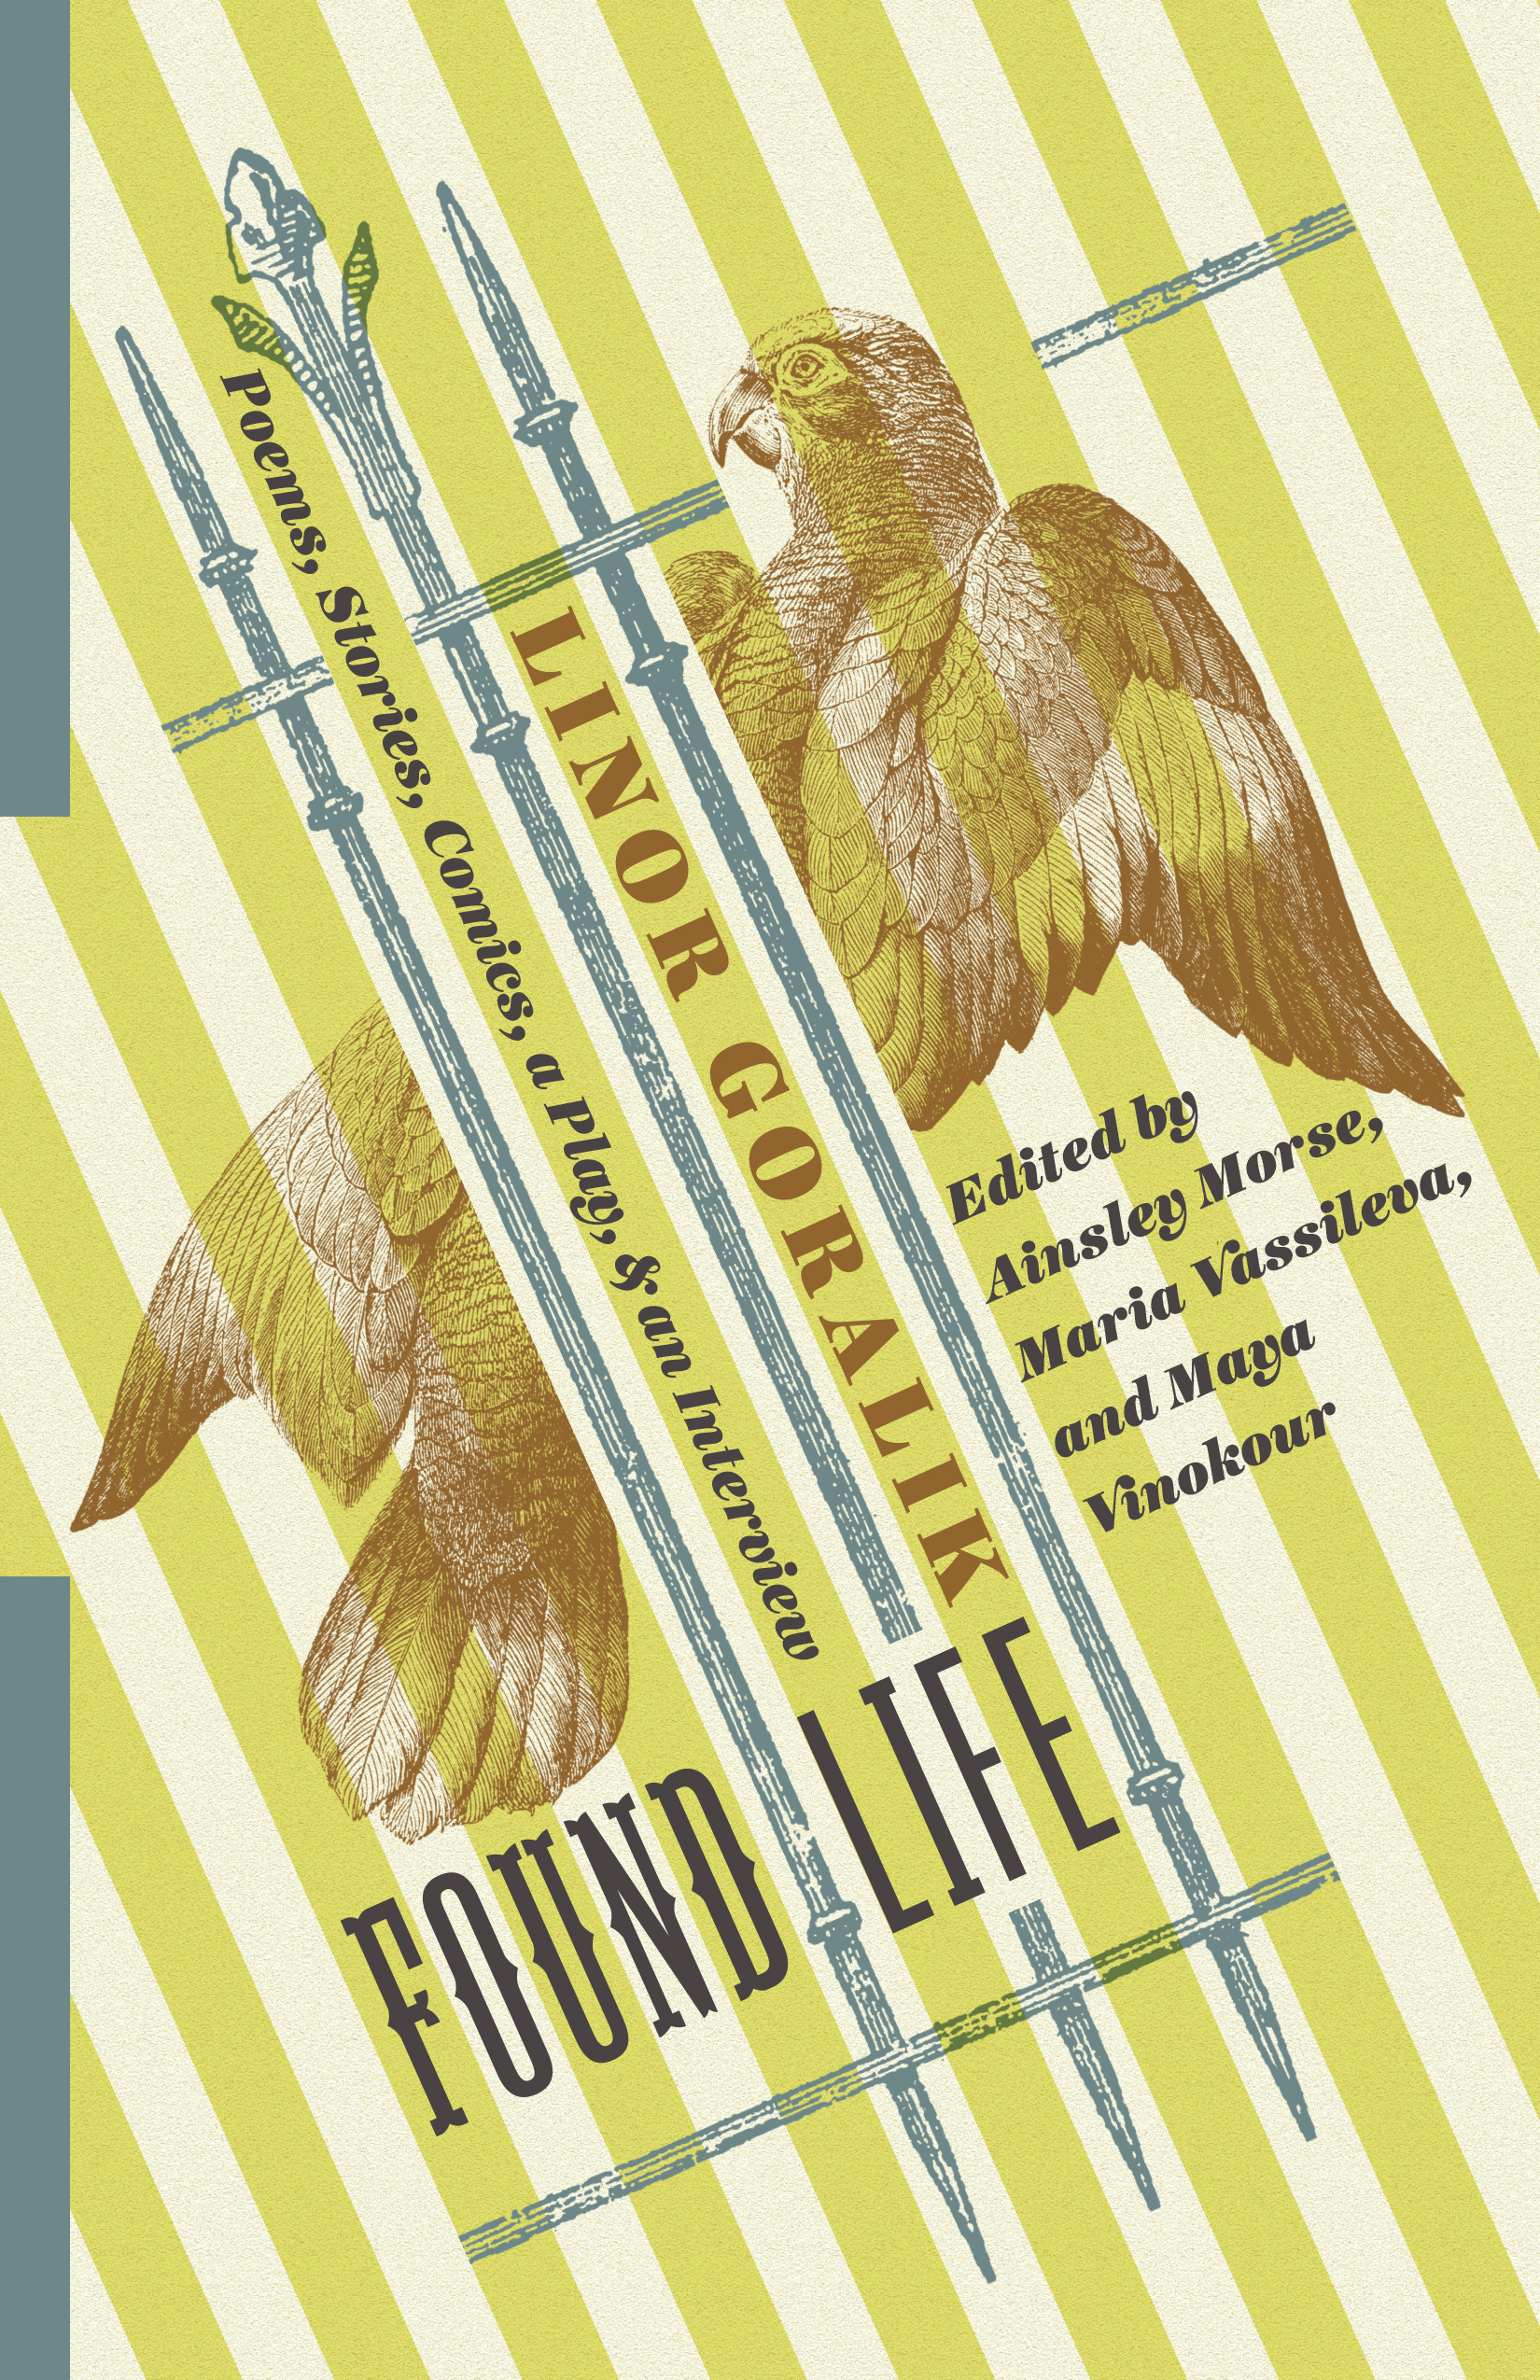 Found Life: Poems, Stories, Comics, a Play, & an Interview   by  Linor Goralik  (Columbia University Press 2017)